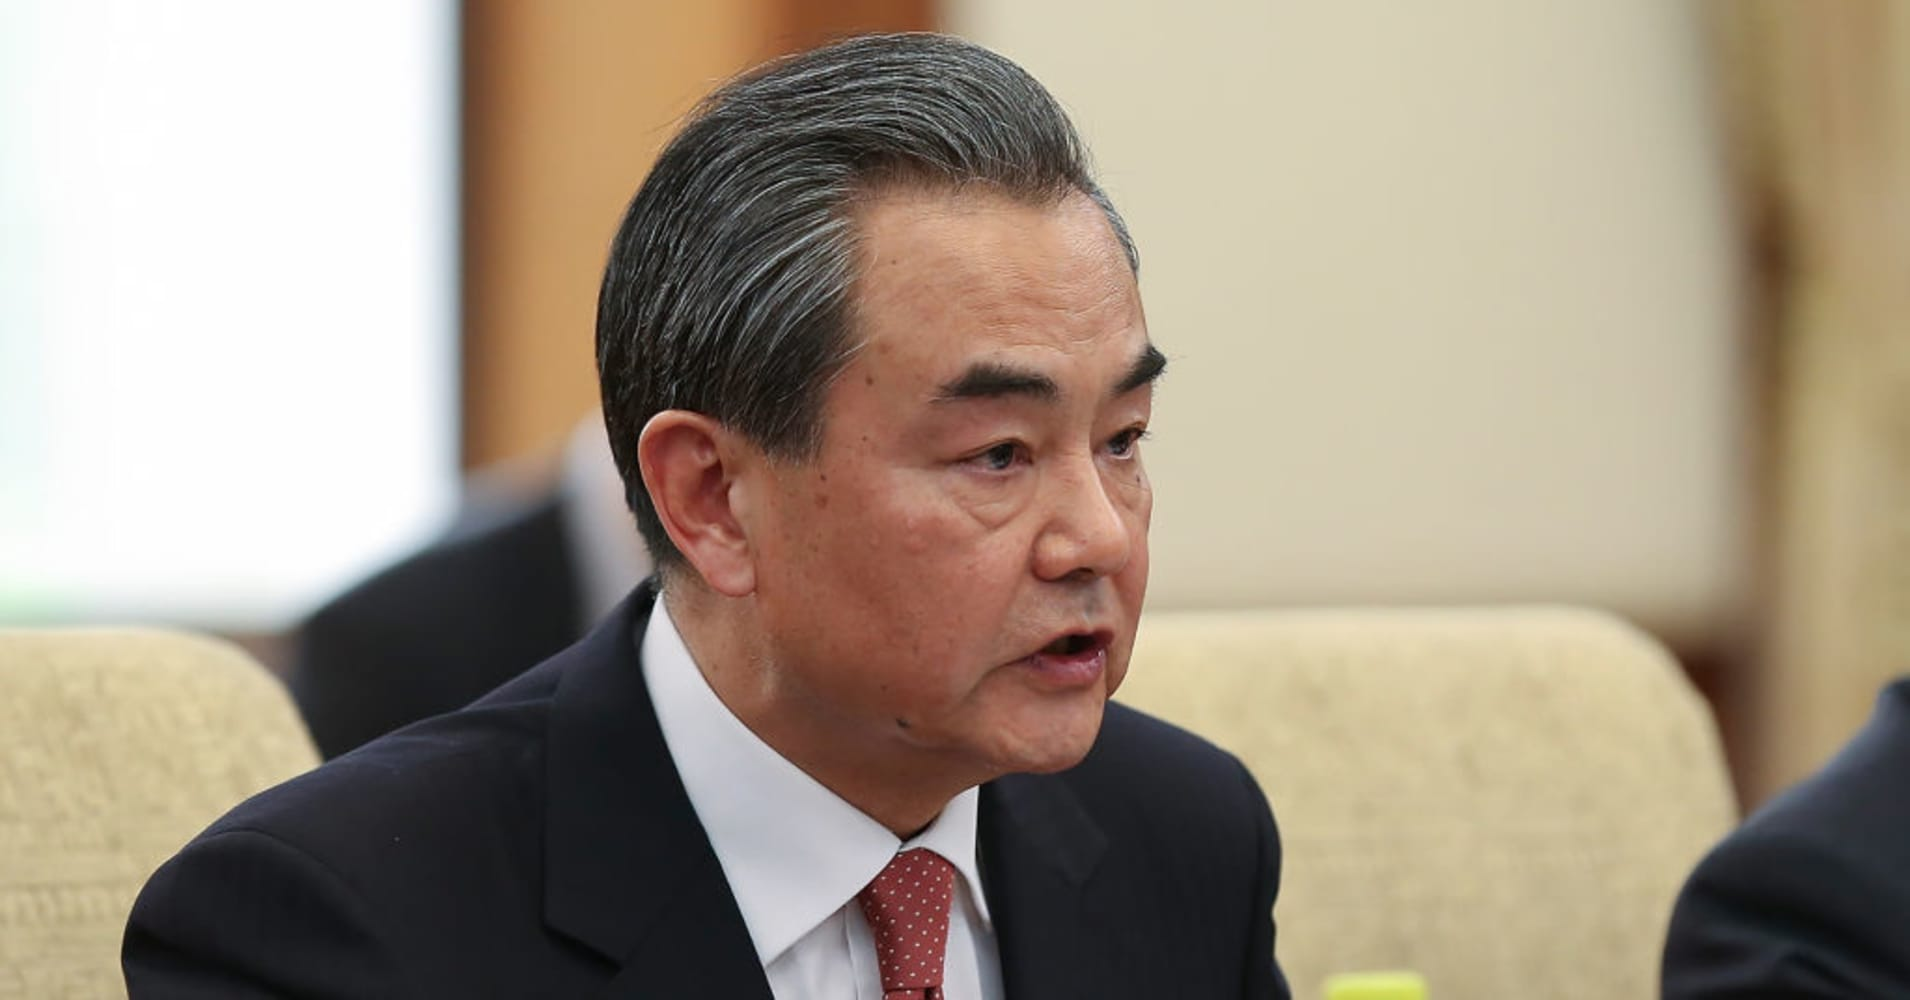 China's foreign minister says only diplomacy can resolve North Korea tensions